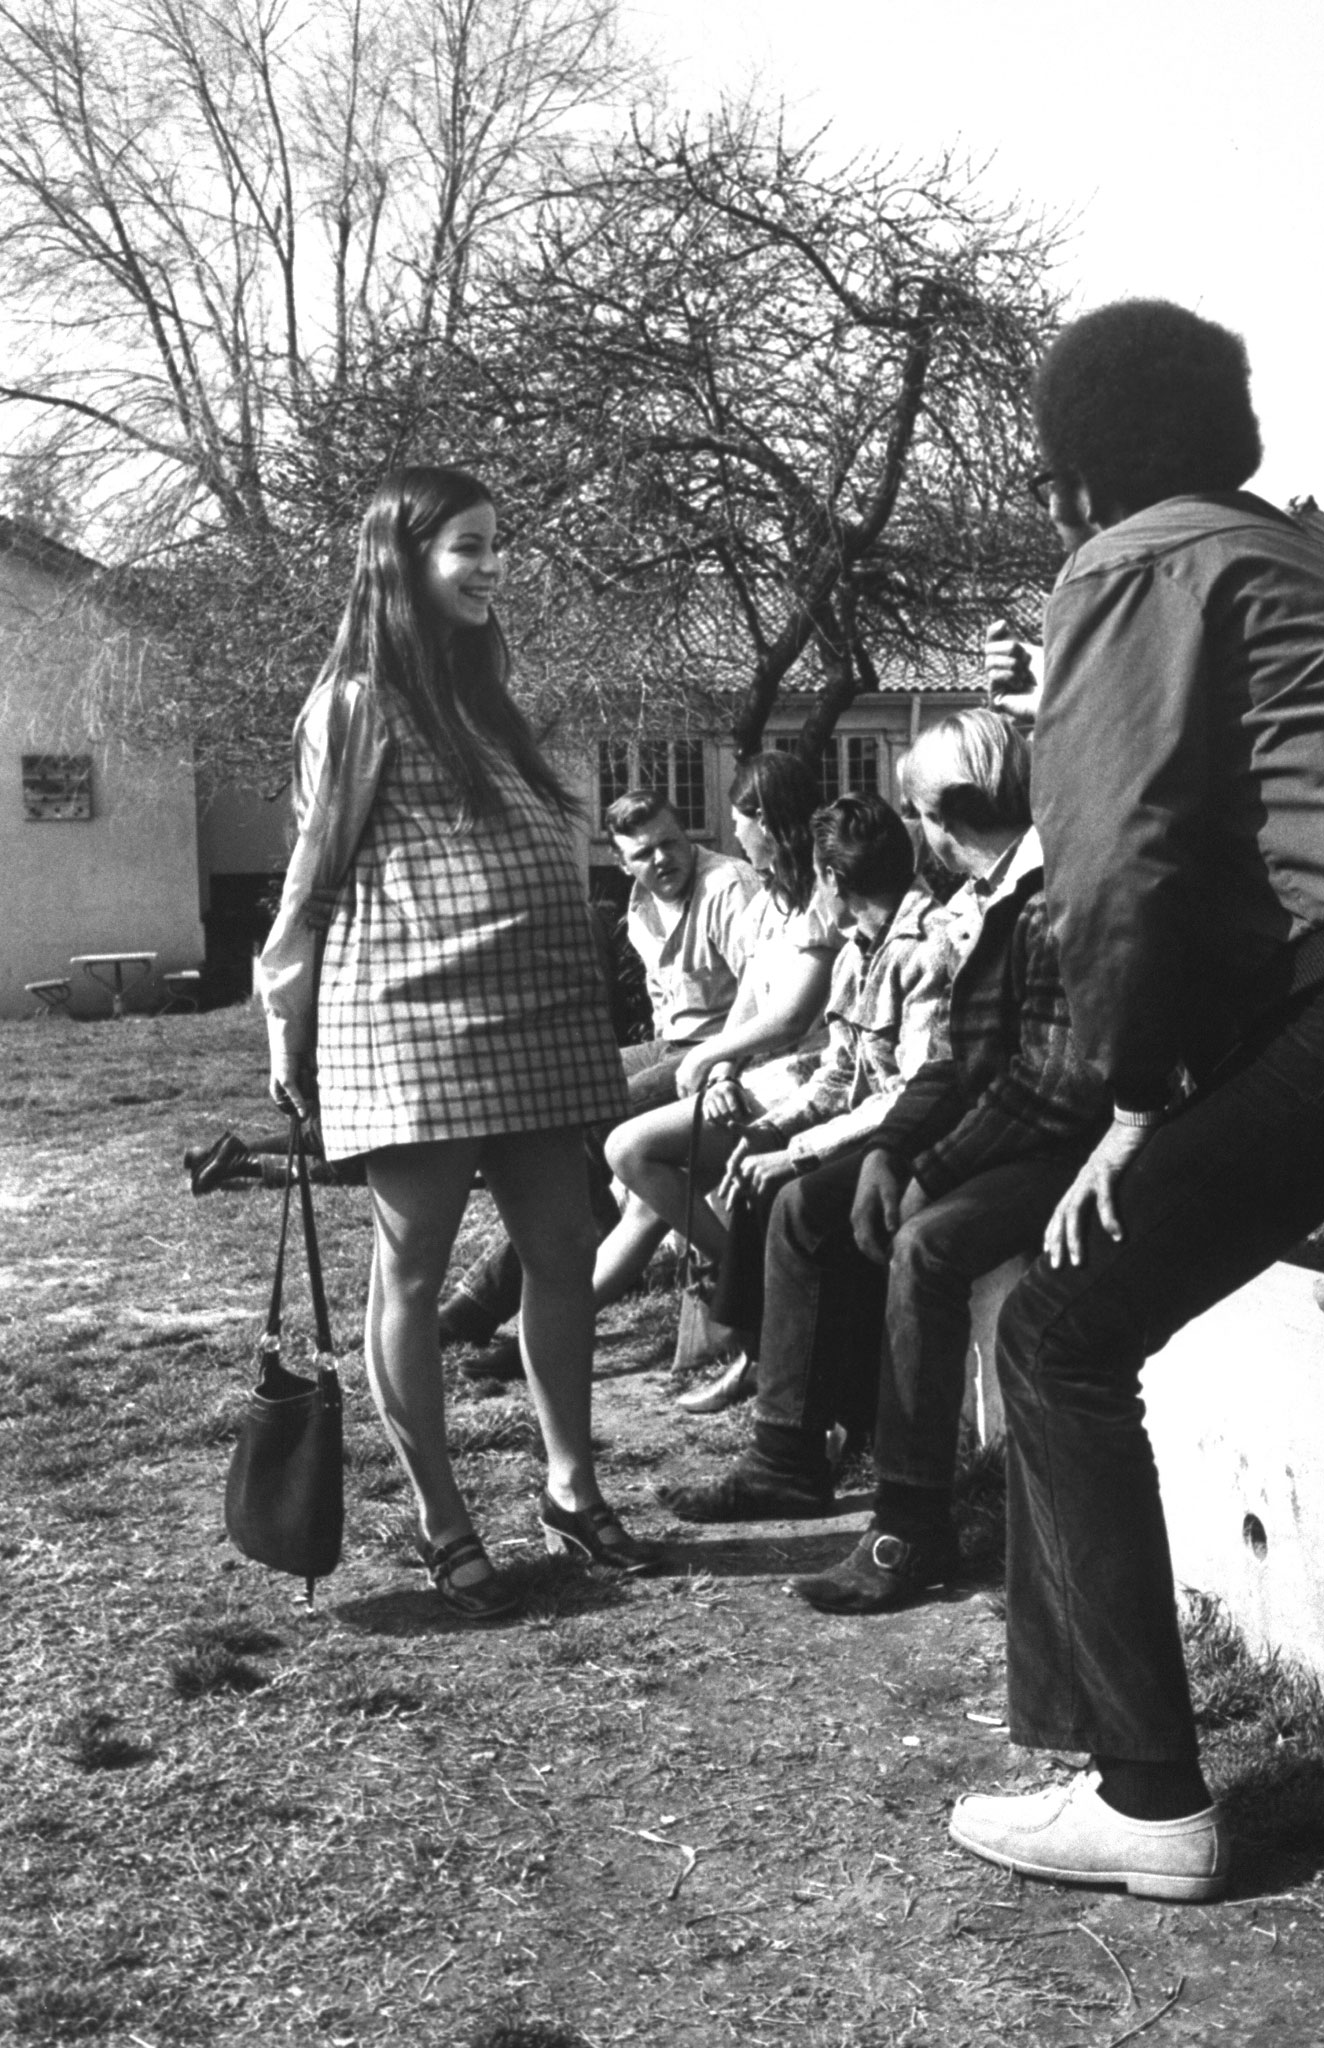 <b>Caption from LIFE.</b> Judy Fay chats with a group of students outside class. Now that there are pregnant girls at Citrus, the boys have cleaned up their language, courteously hold open doors and even push strollers.